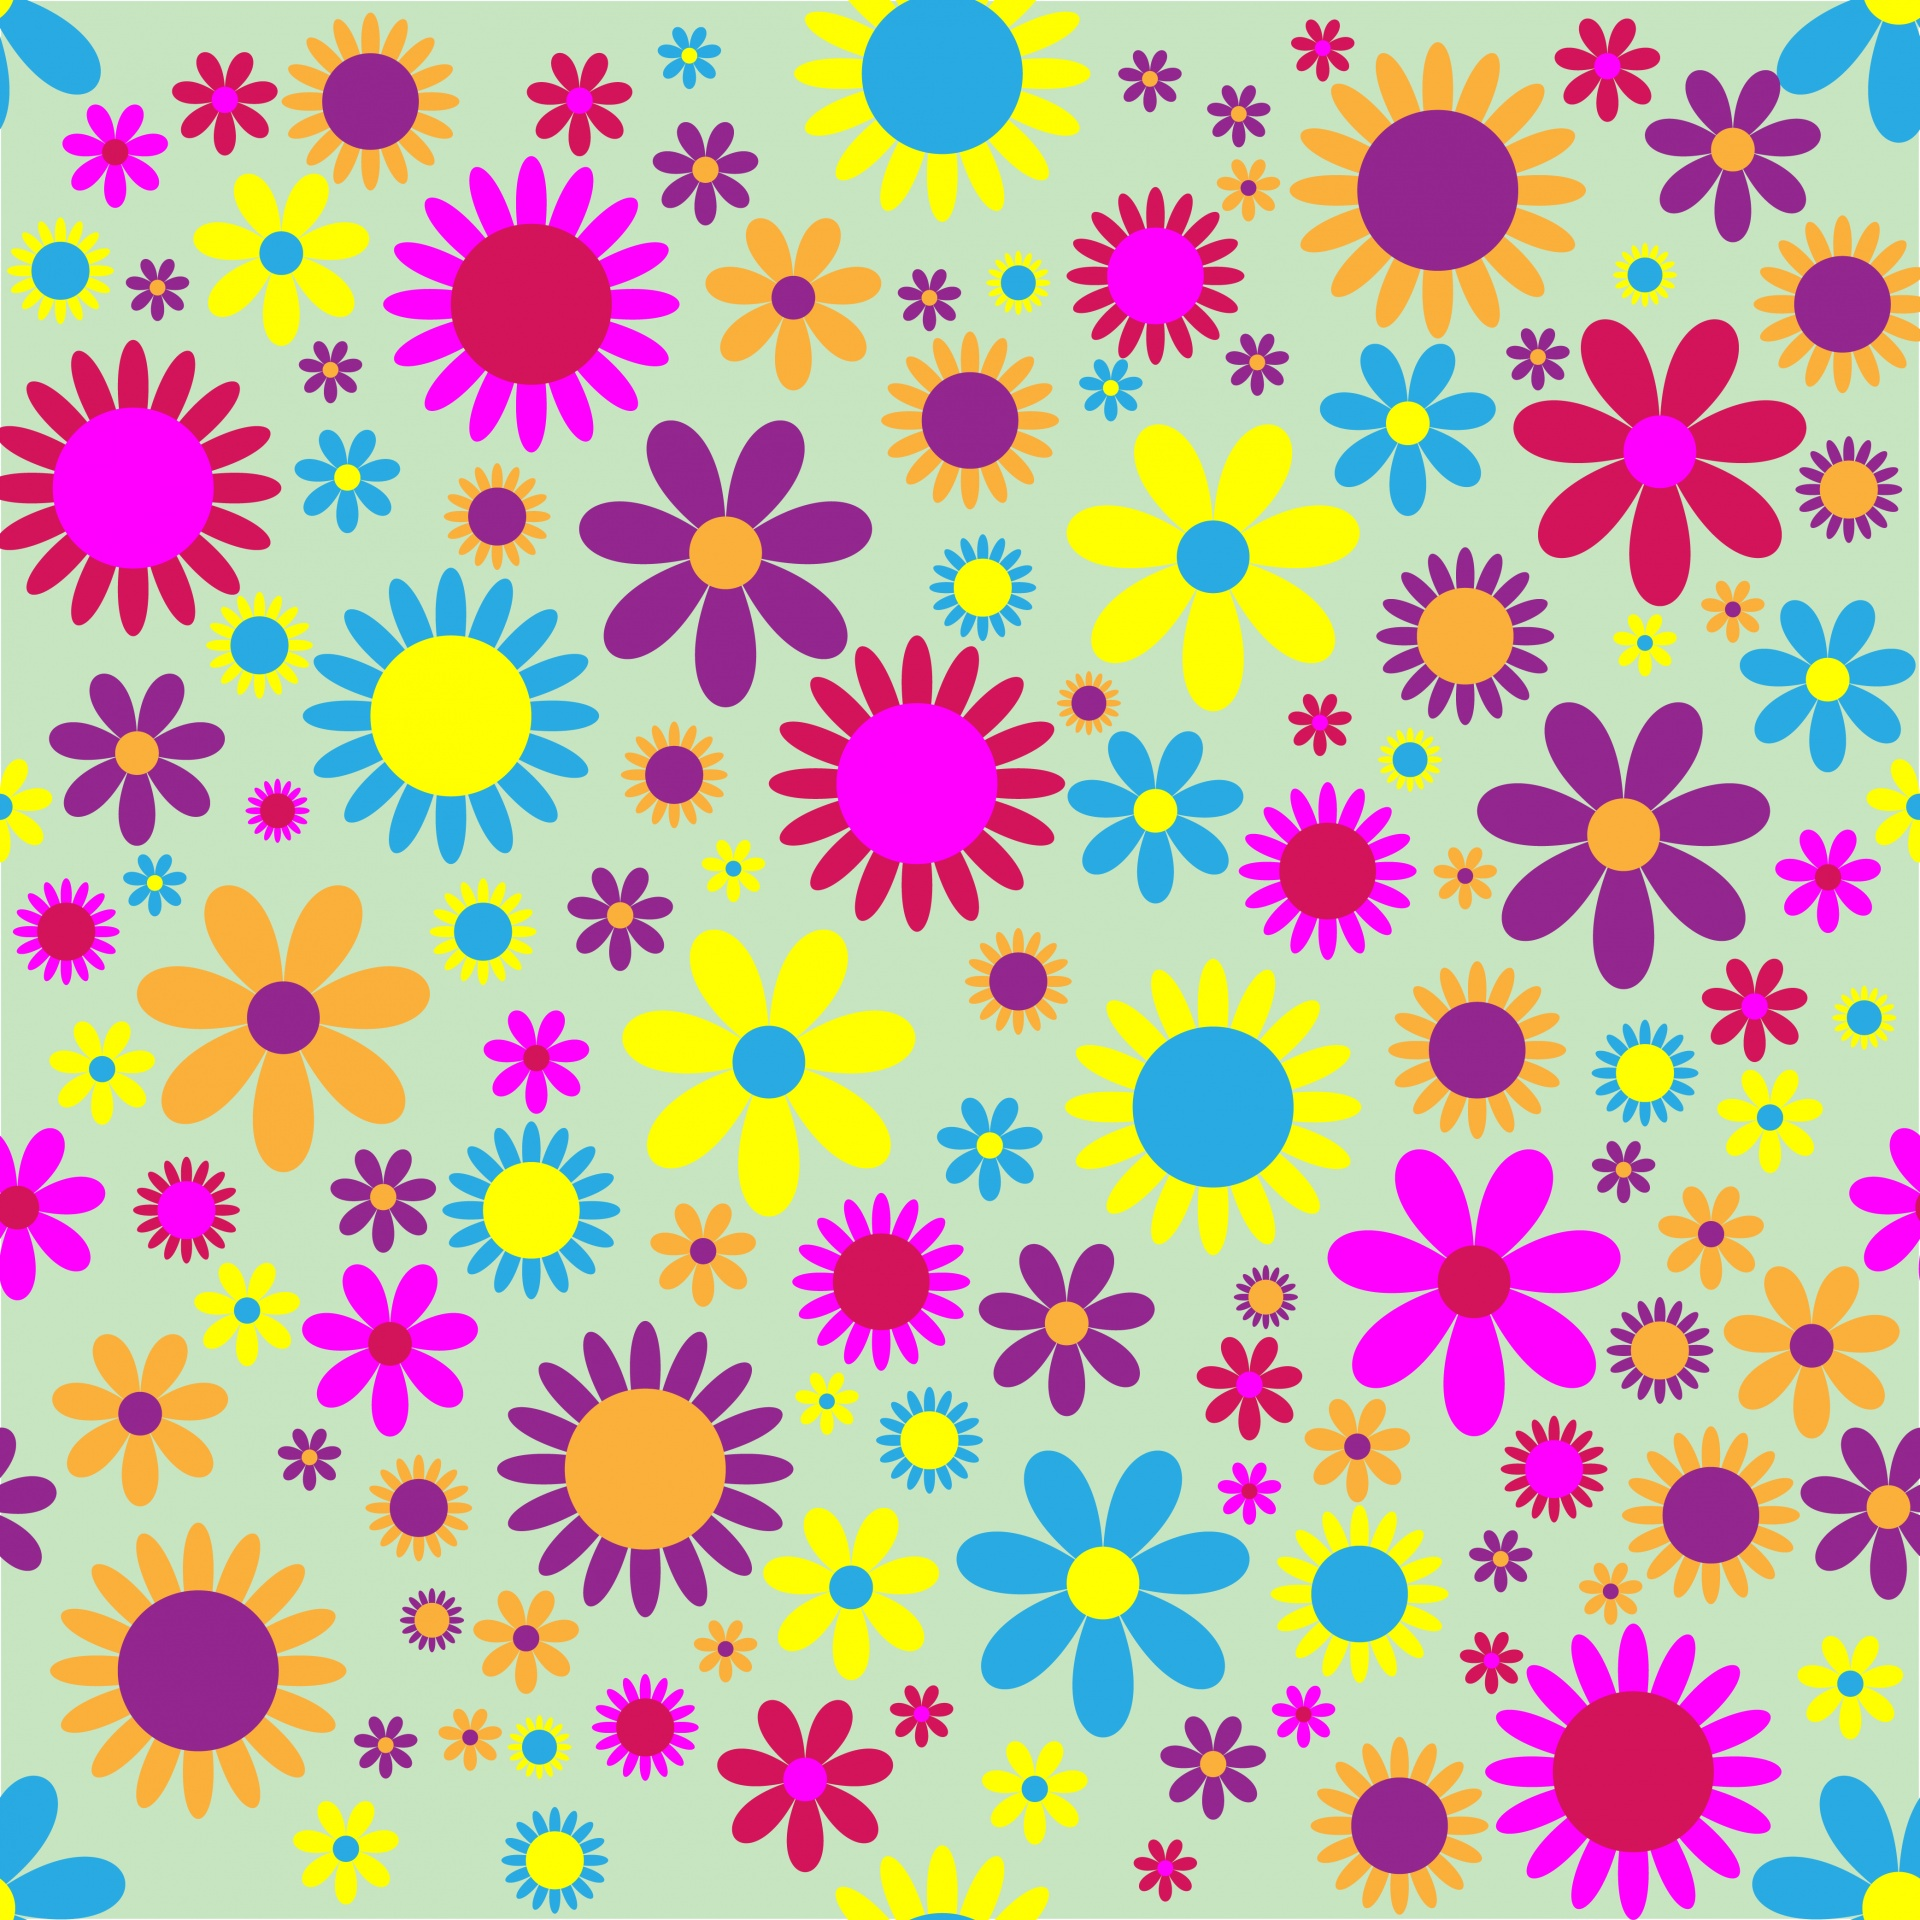 Floral Flowers Wallpaper Paper Background Free Photo From Needpix Com